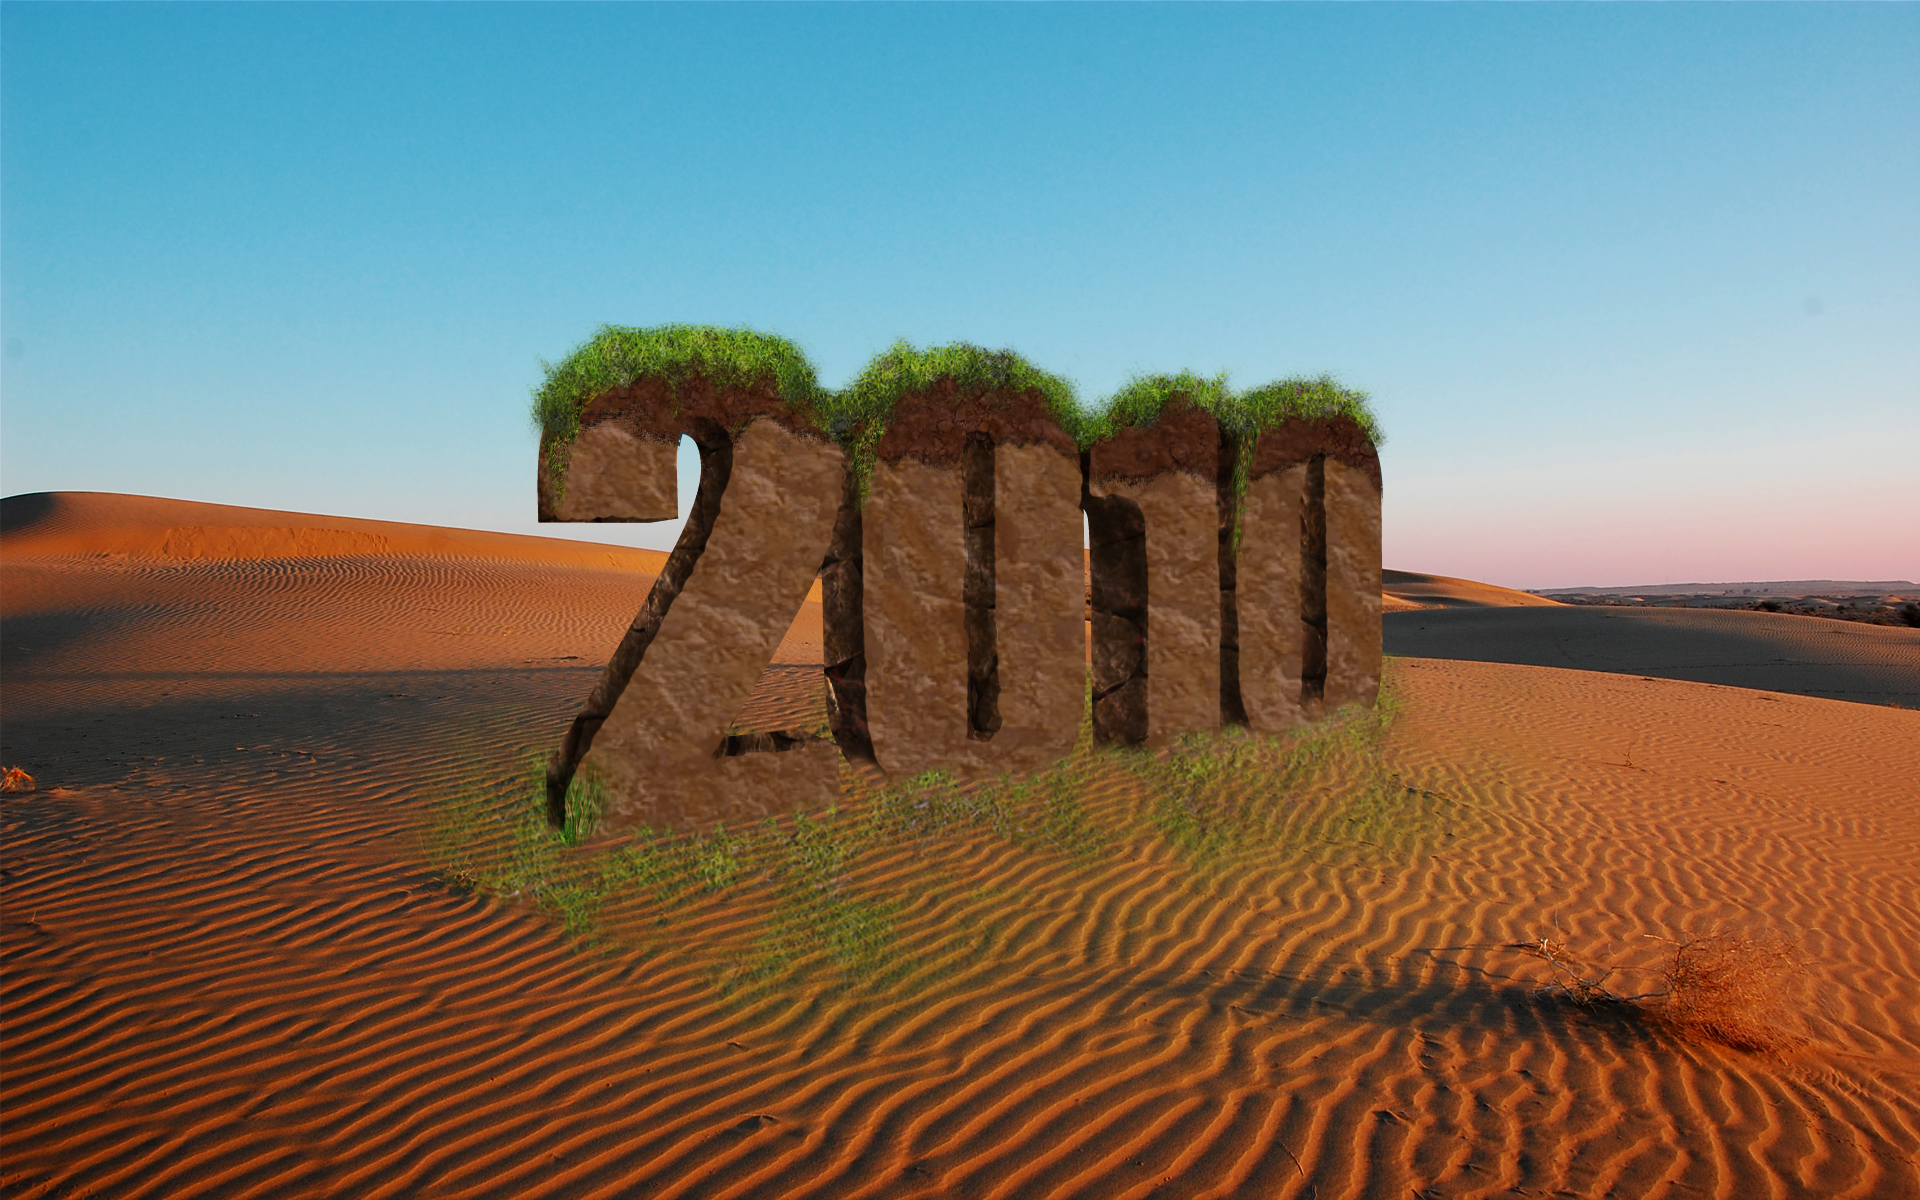 Celebrate 2010 with 3D text by ritamd